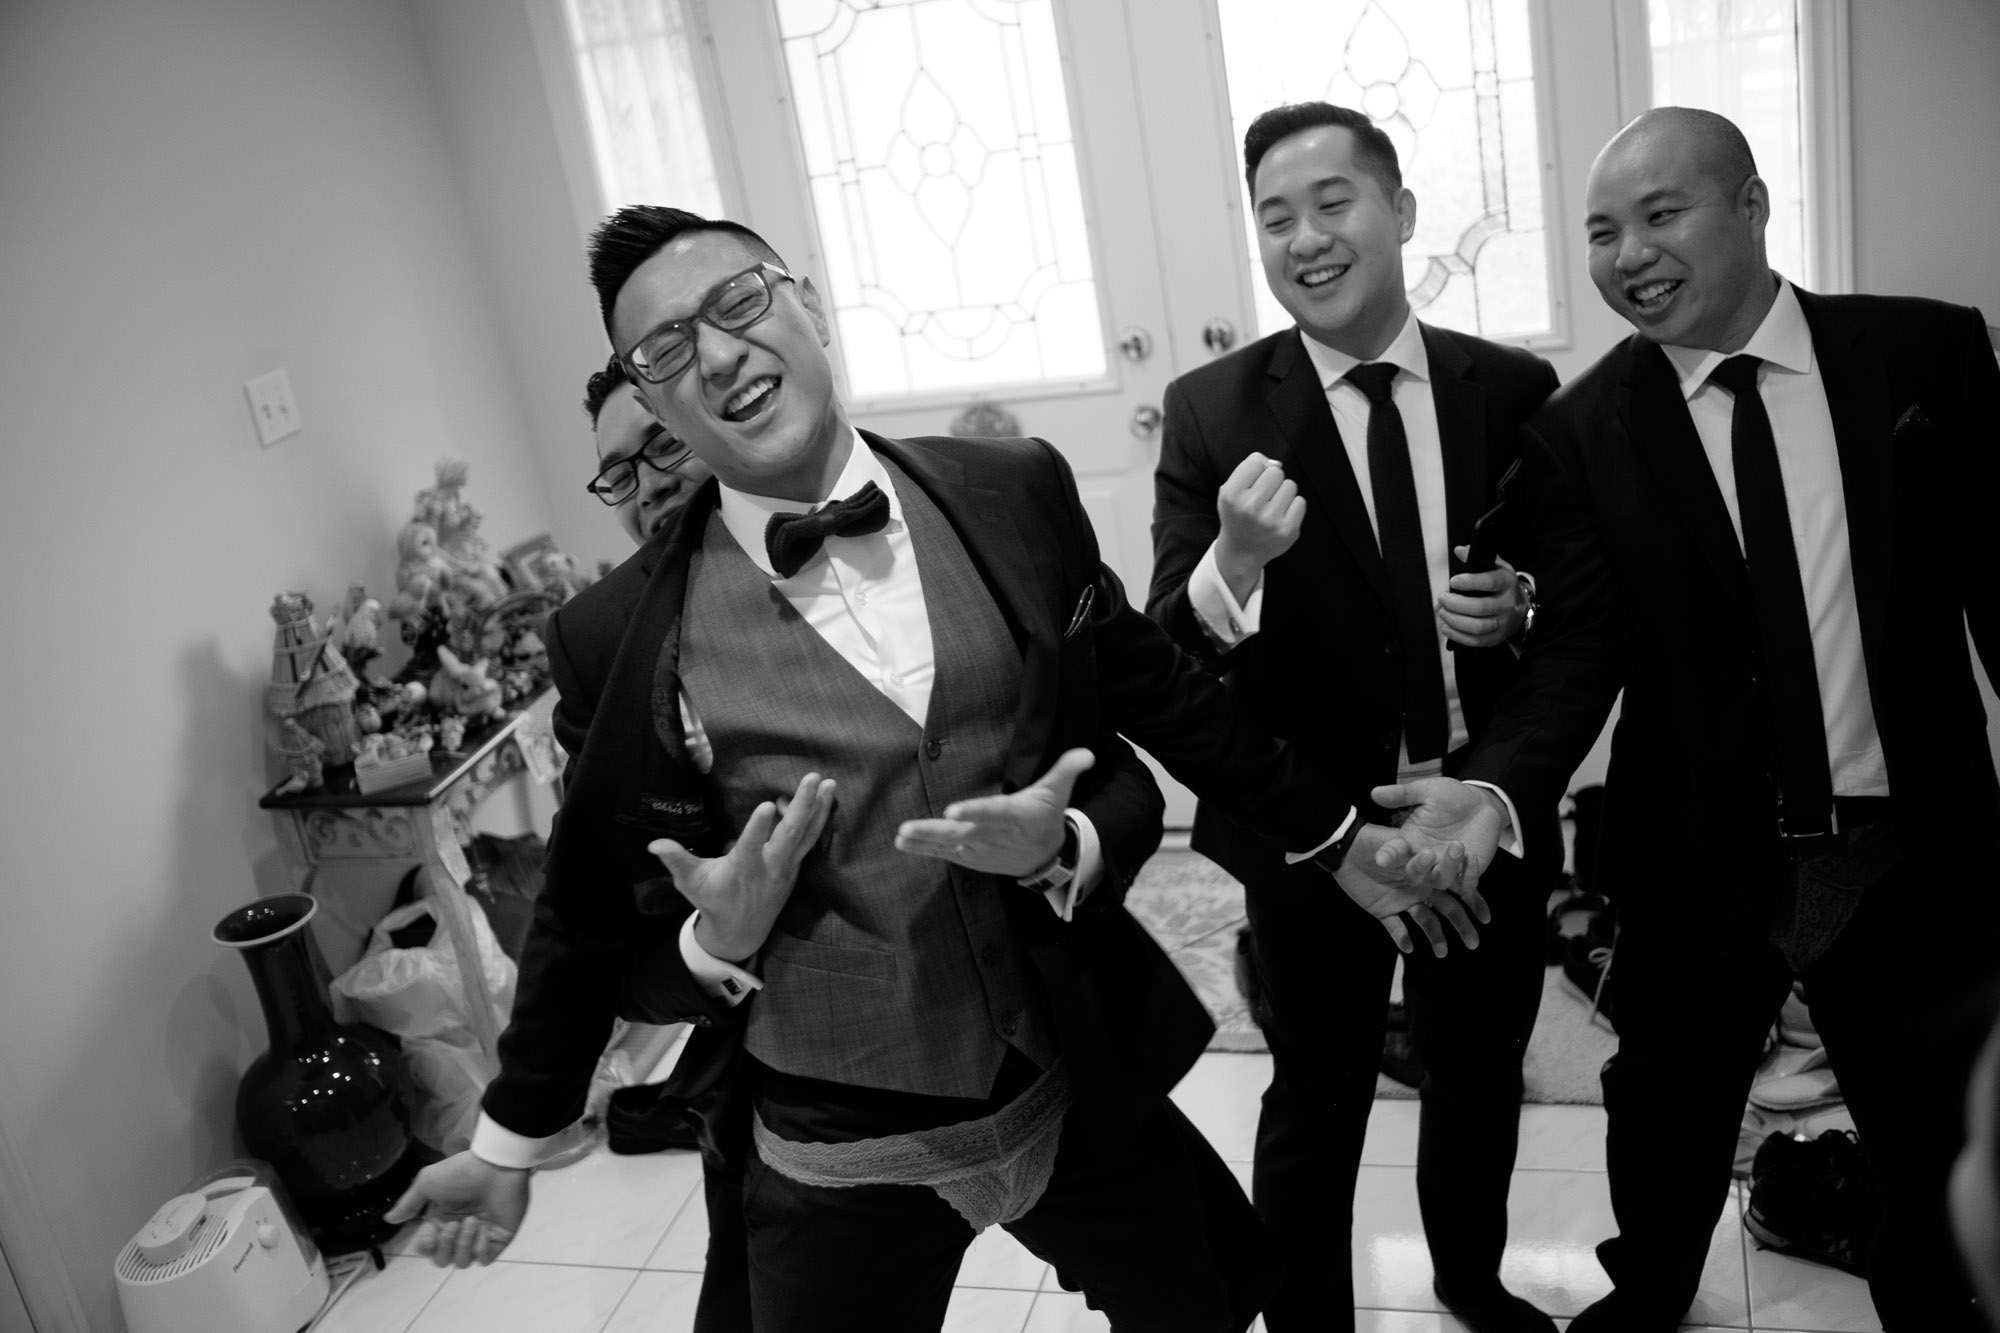 Chris and his groomsmen sing during traditional Chinese door games before their wedding at Madsen's Greenhouse.